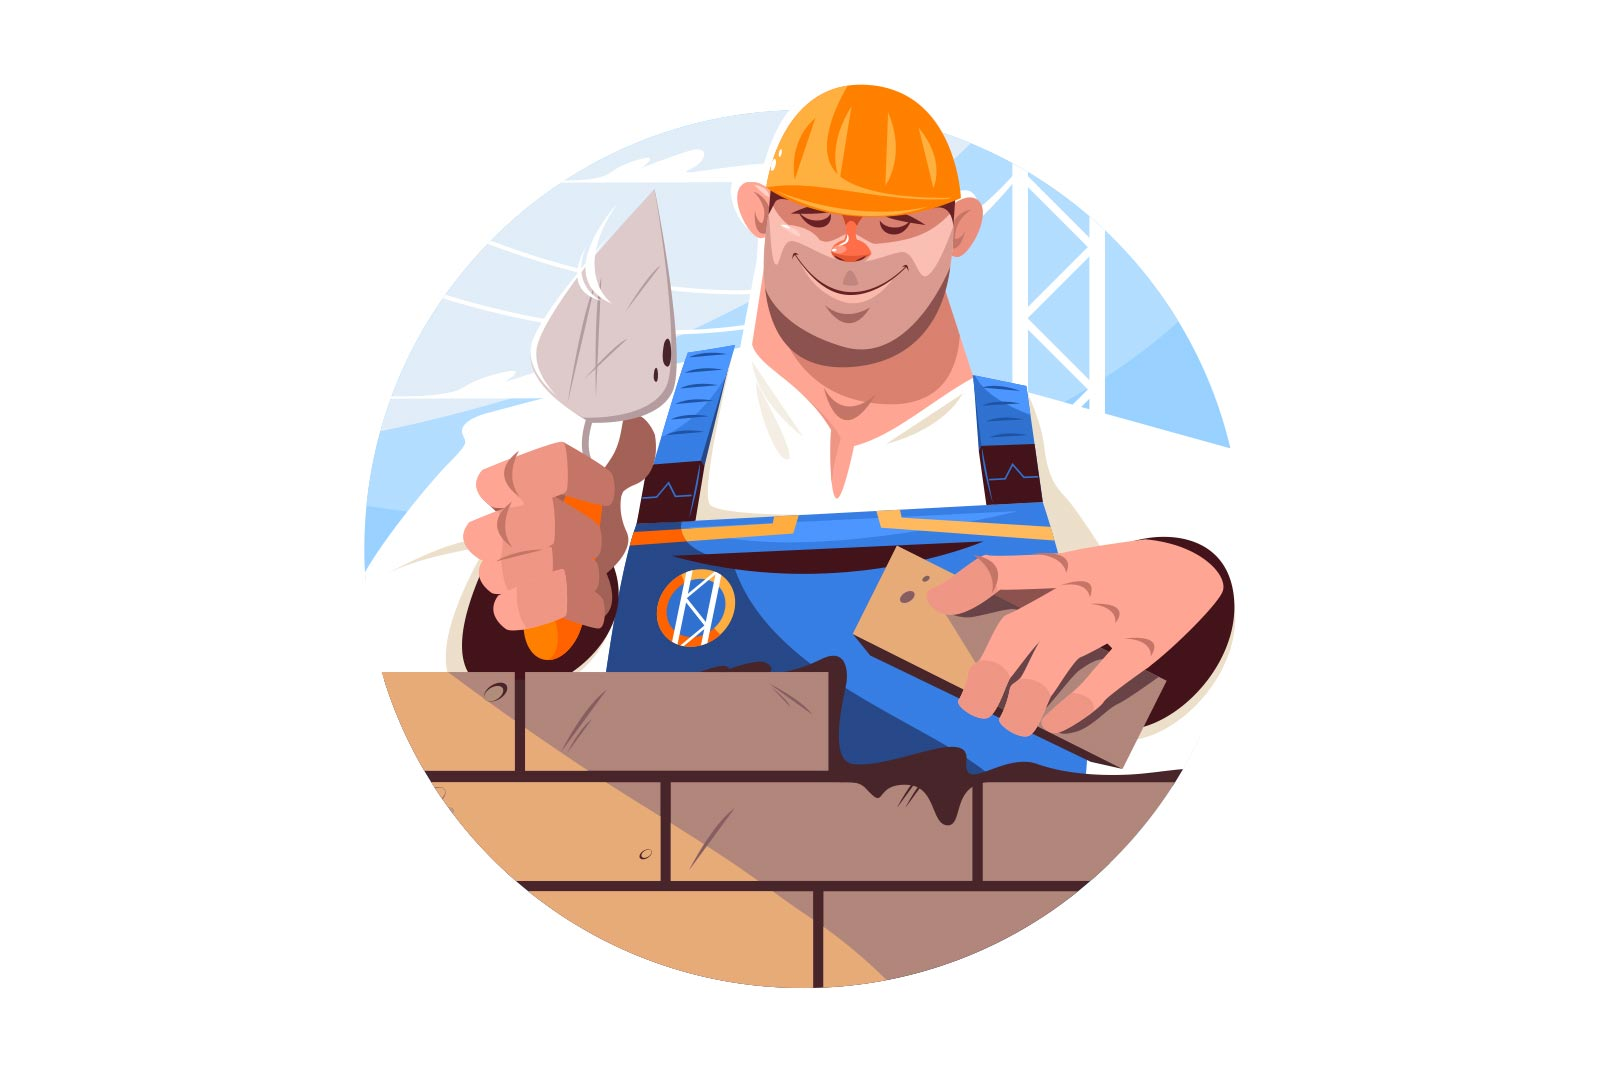 Builder holding brick vector illustration. Happy worker in protective hat on construction site flat style. Renovation and building concept. Isolated on white background